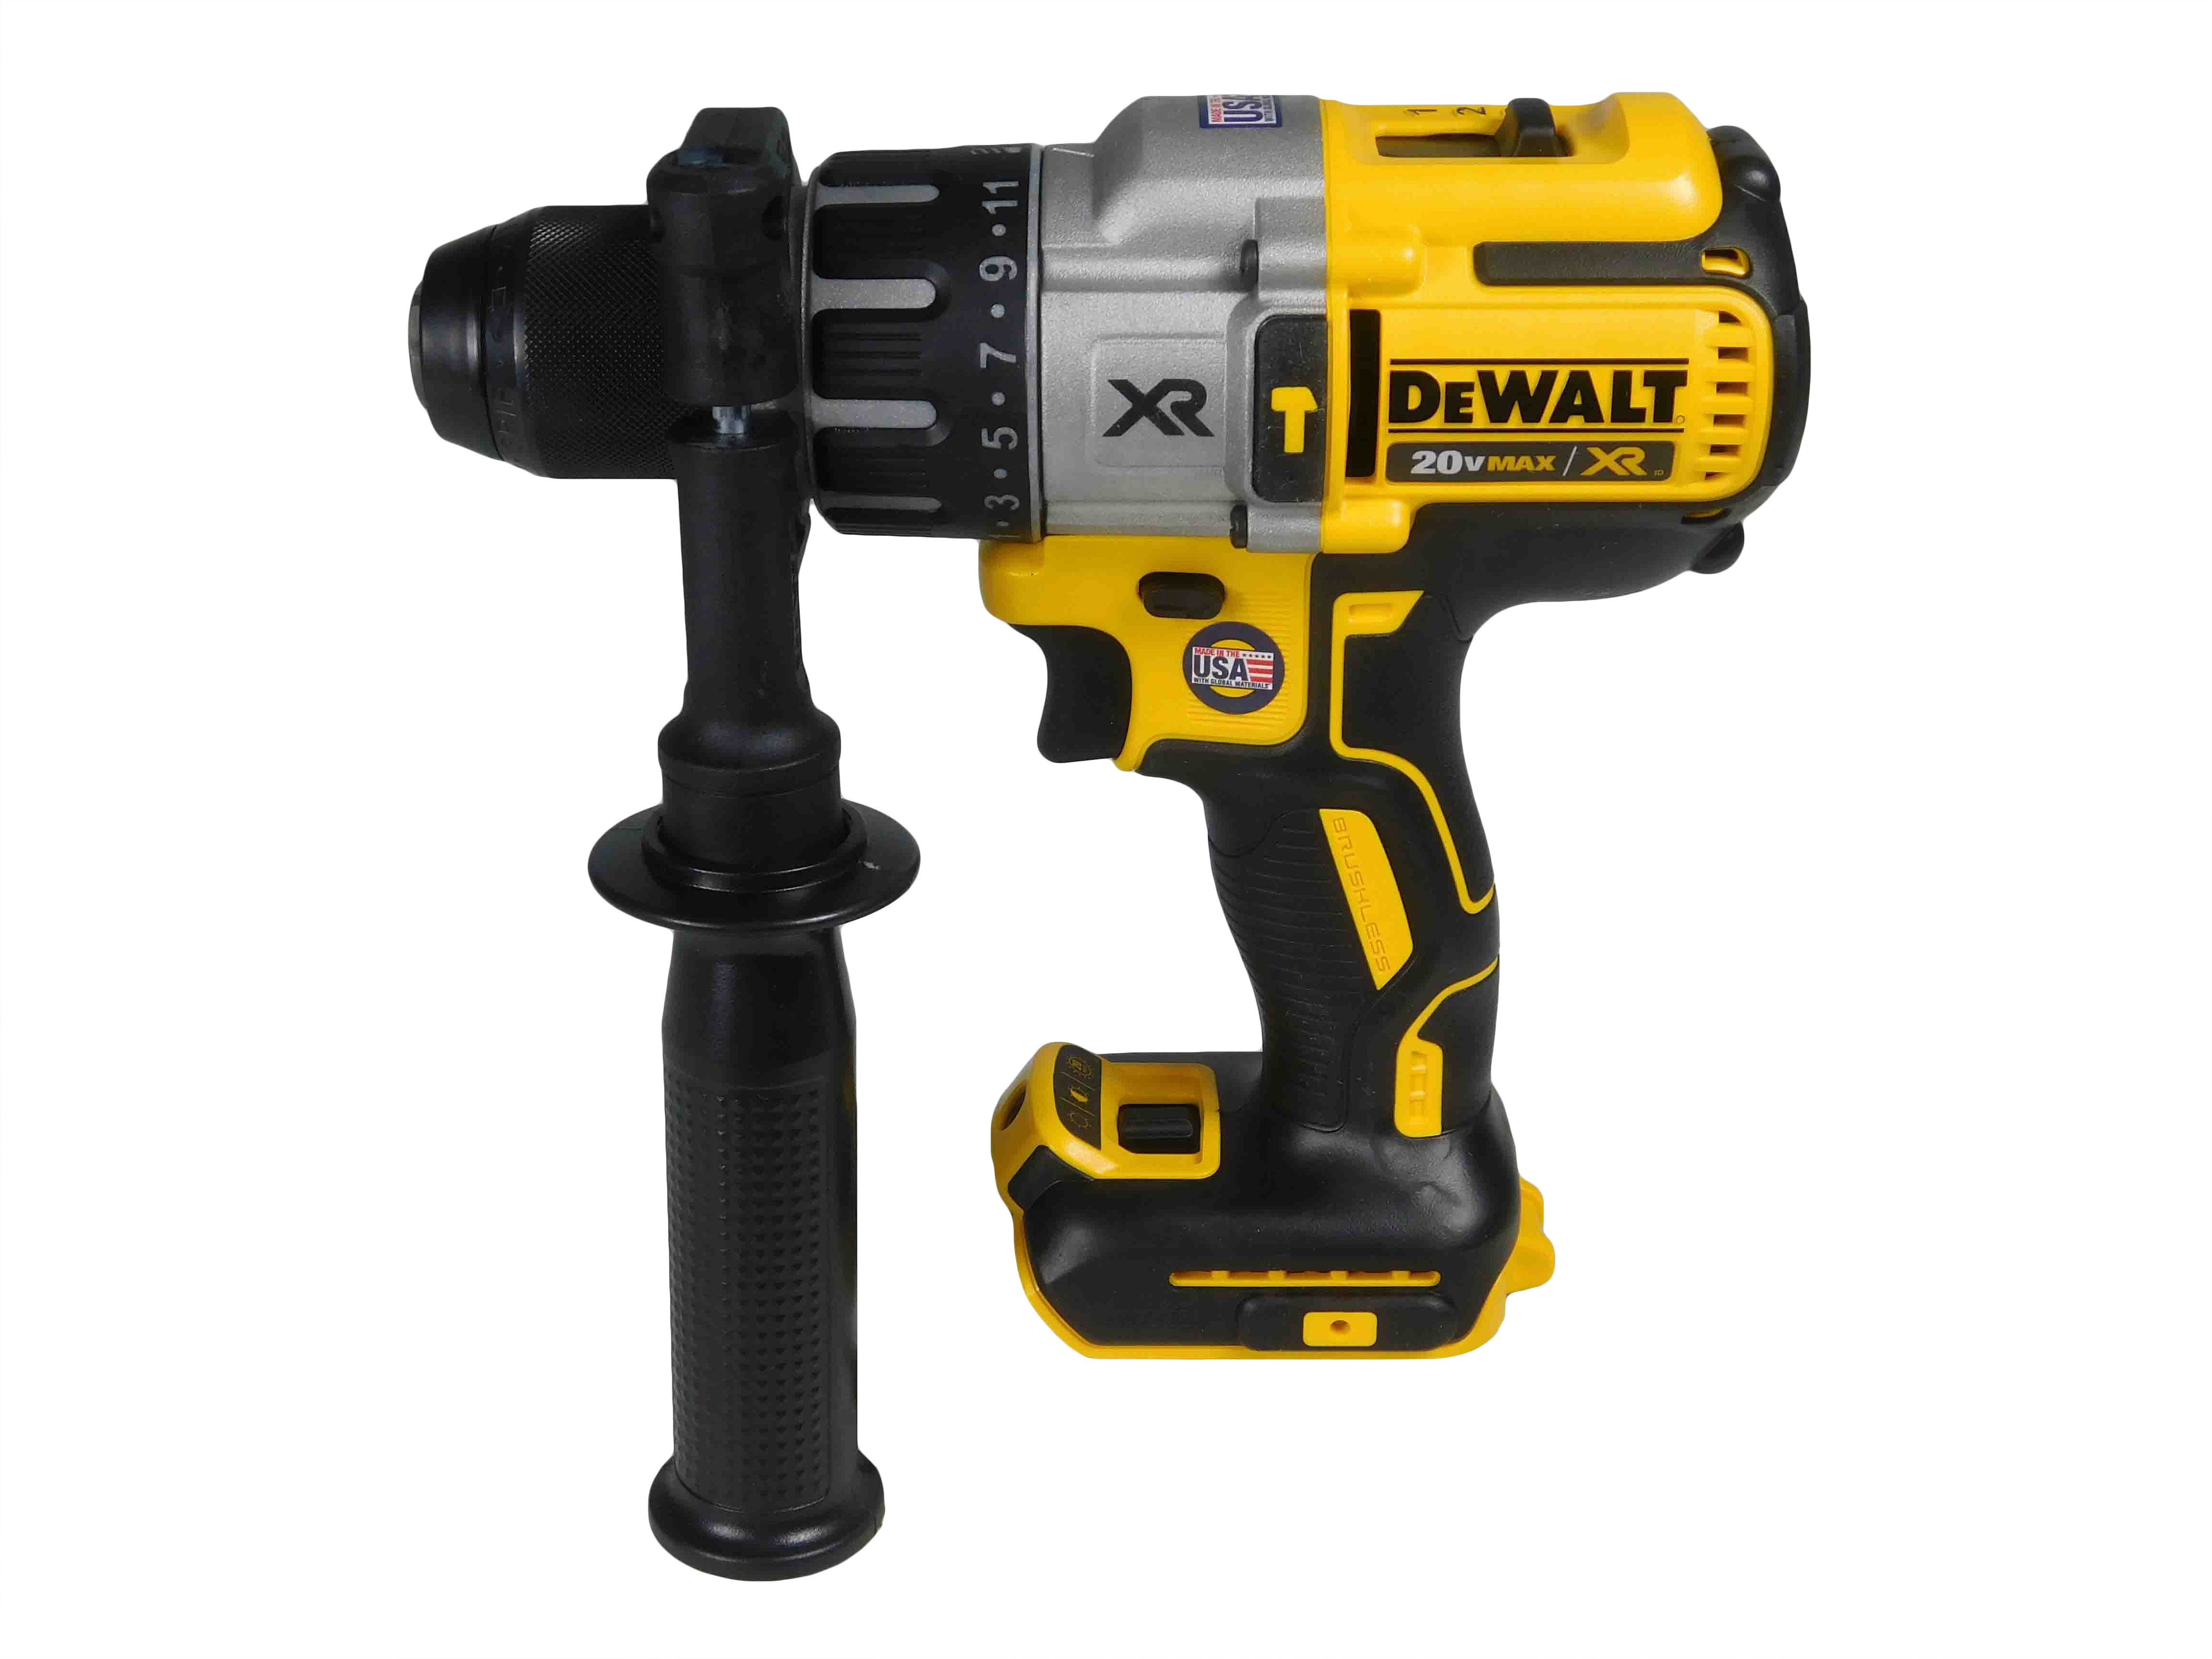 DEWALT-DCD996B-20V-MAX-Li-Ion-1-2inch-3-Speed-Brushless-Hammer-Drill-image-2